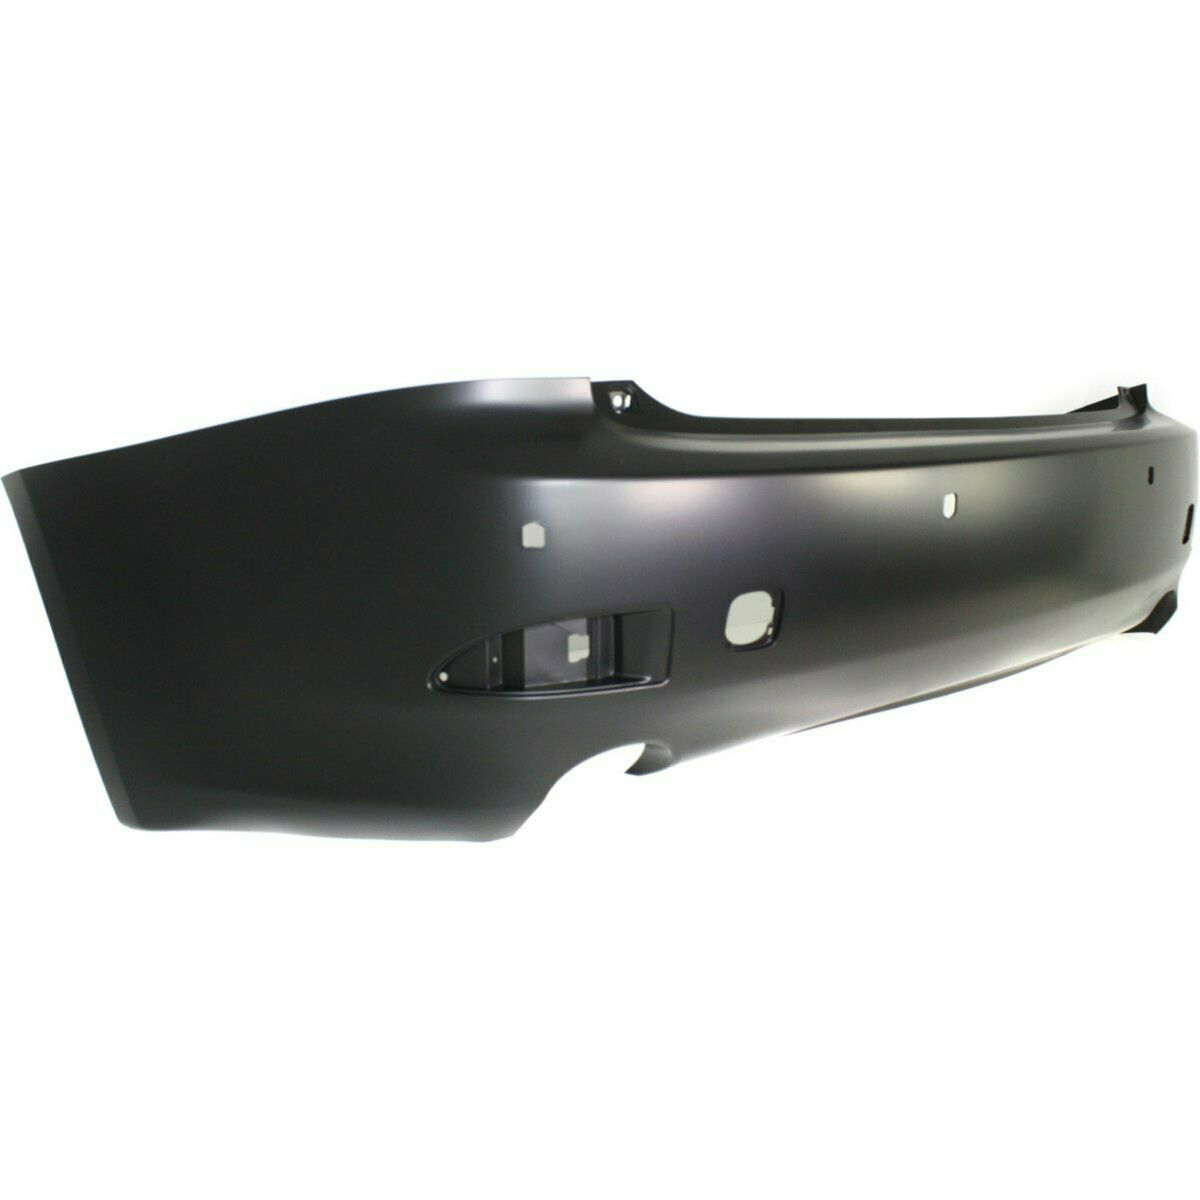 2006-2008 Lexus IS250 IS350 w/Snsr holes Rear bumper Painted to Match